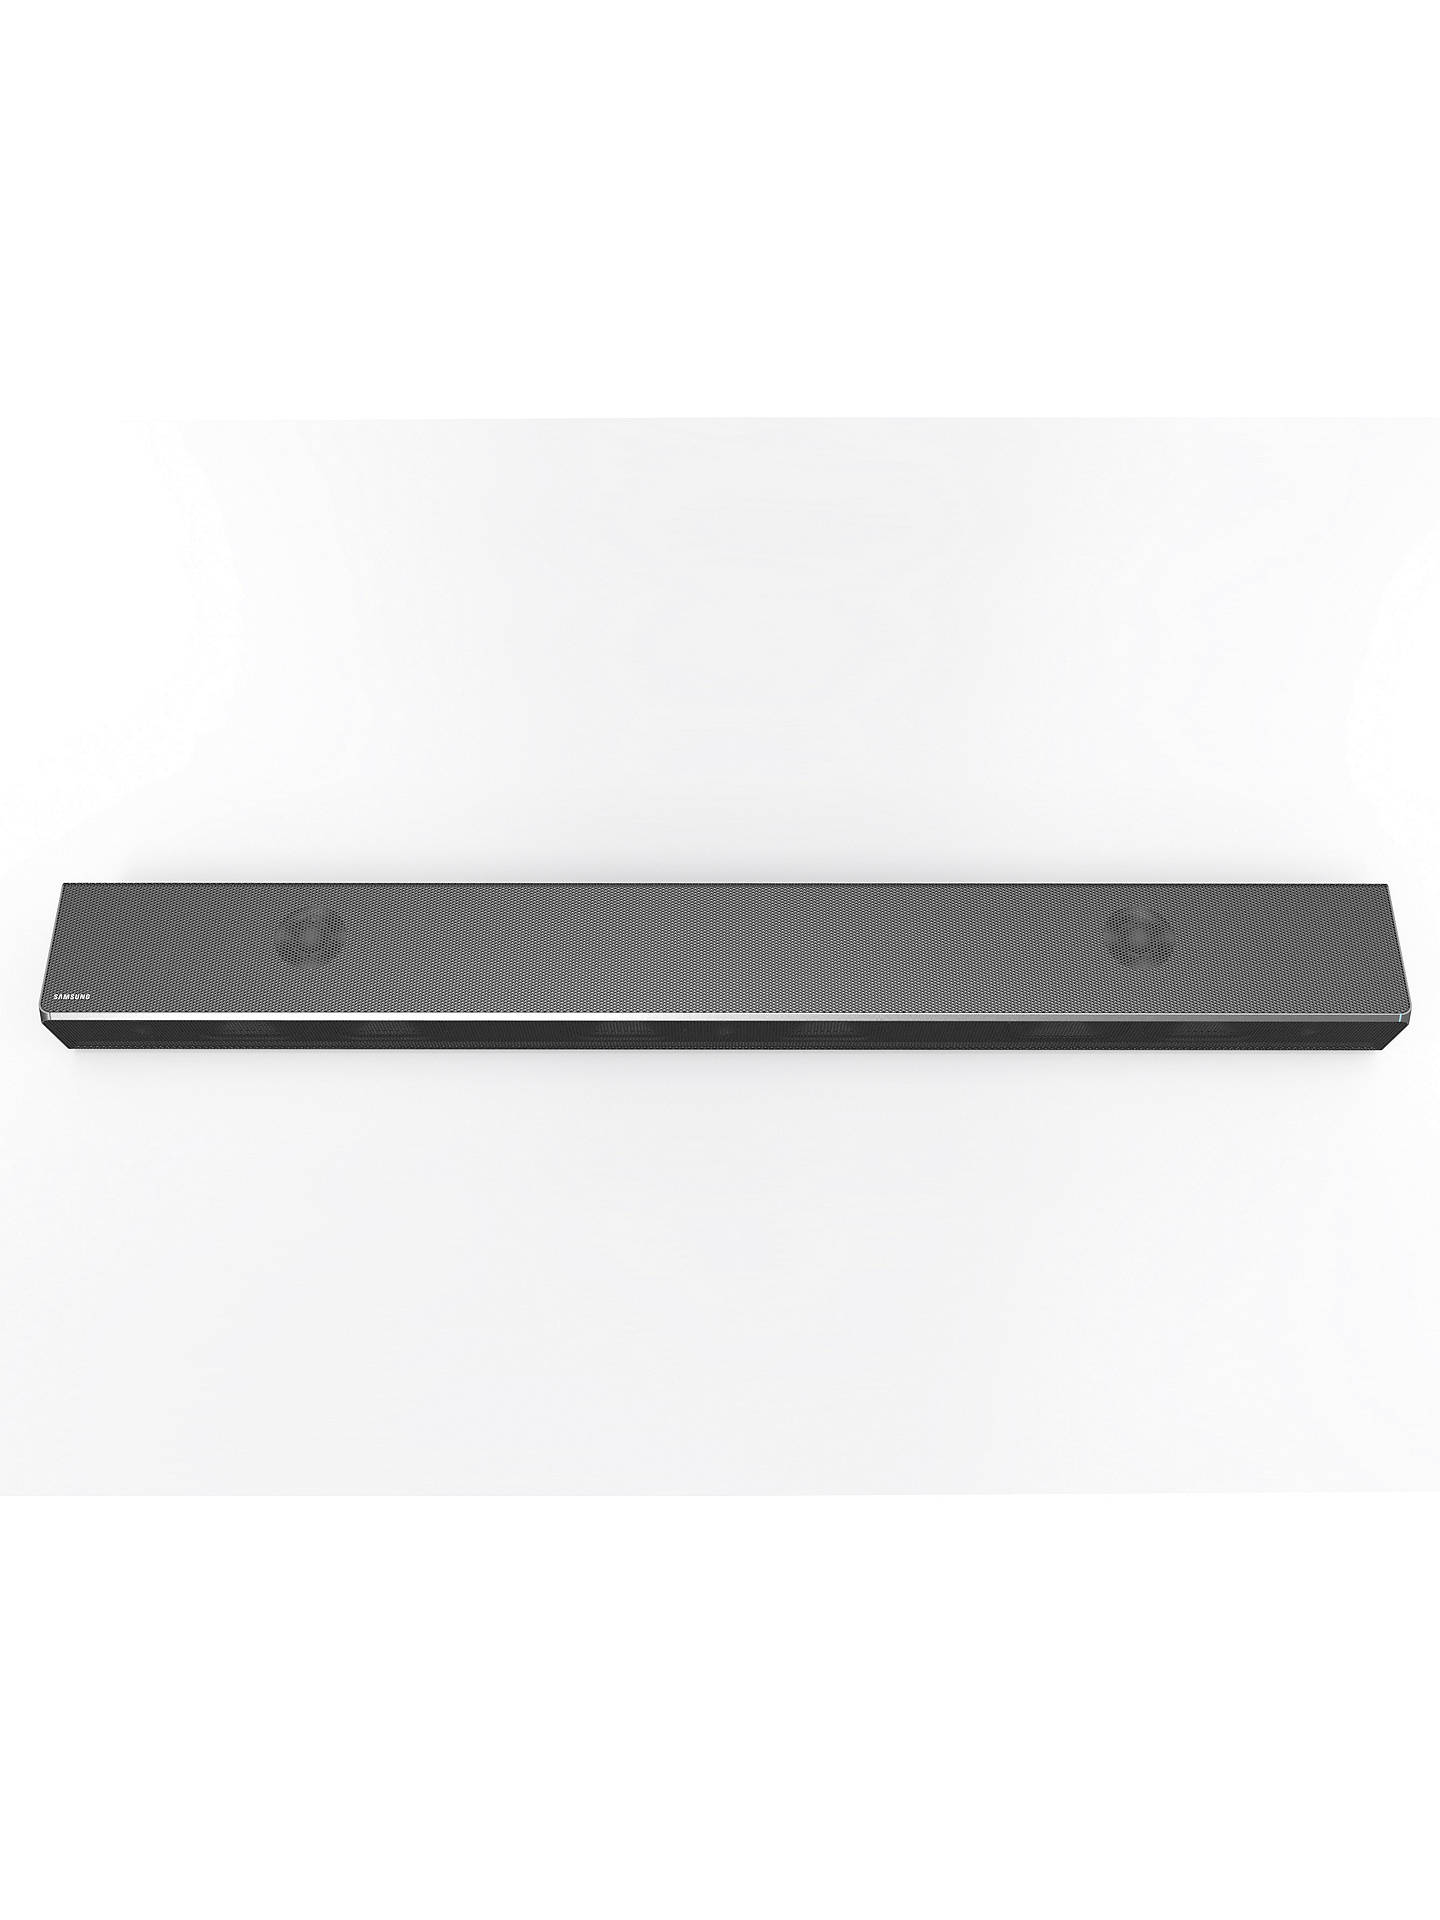 Buy Samsung HW-MS750 Bluetooth Wi-Fi All-In-One Sound Bar with Distortion Cancelling & High Resolution Audio, Titanium Grey Online at johnlewis.com